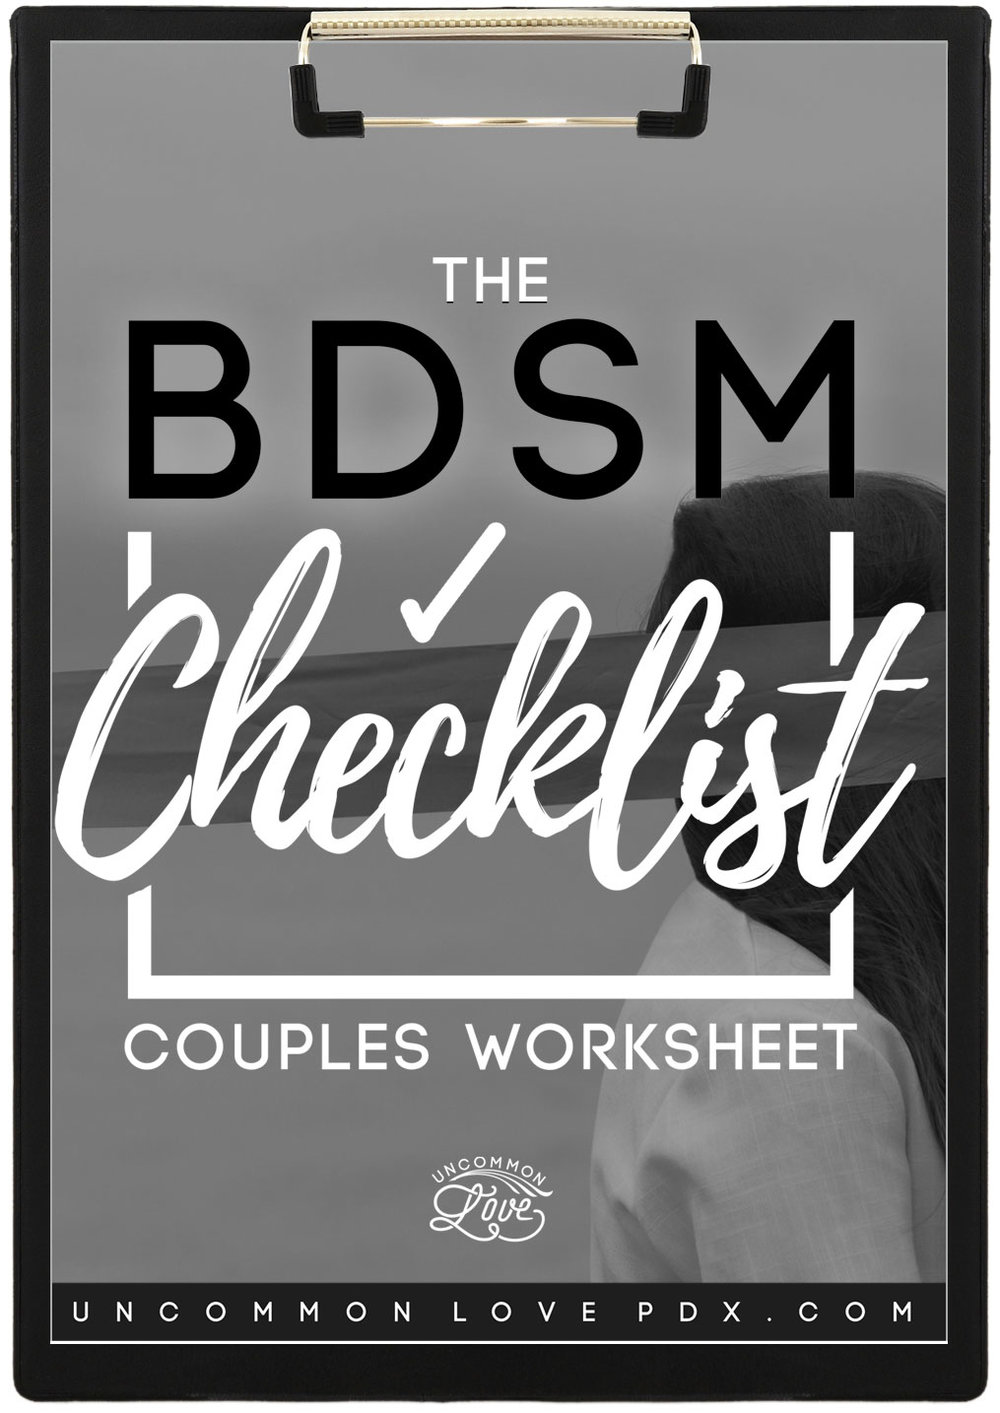 BDSM Checklist PDF Worksheet for BDSM Conversation